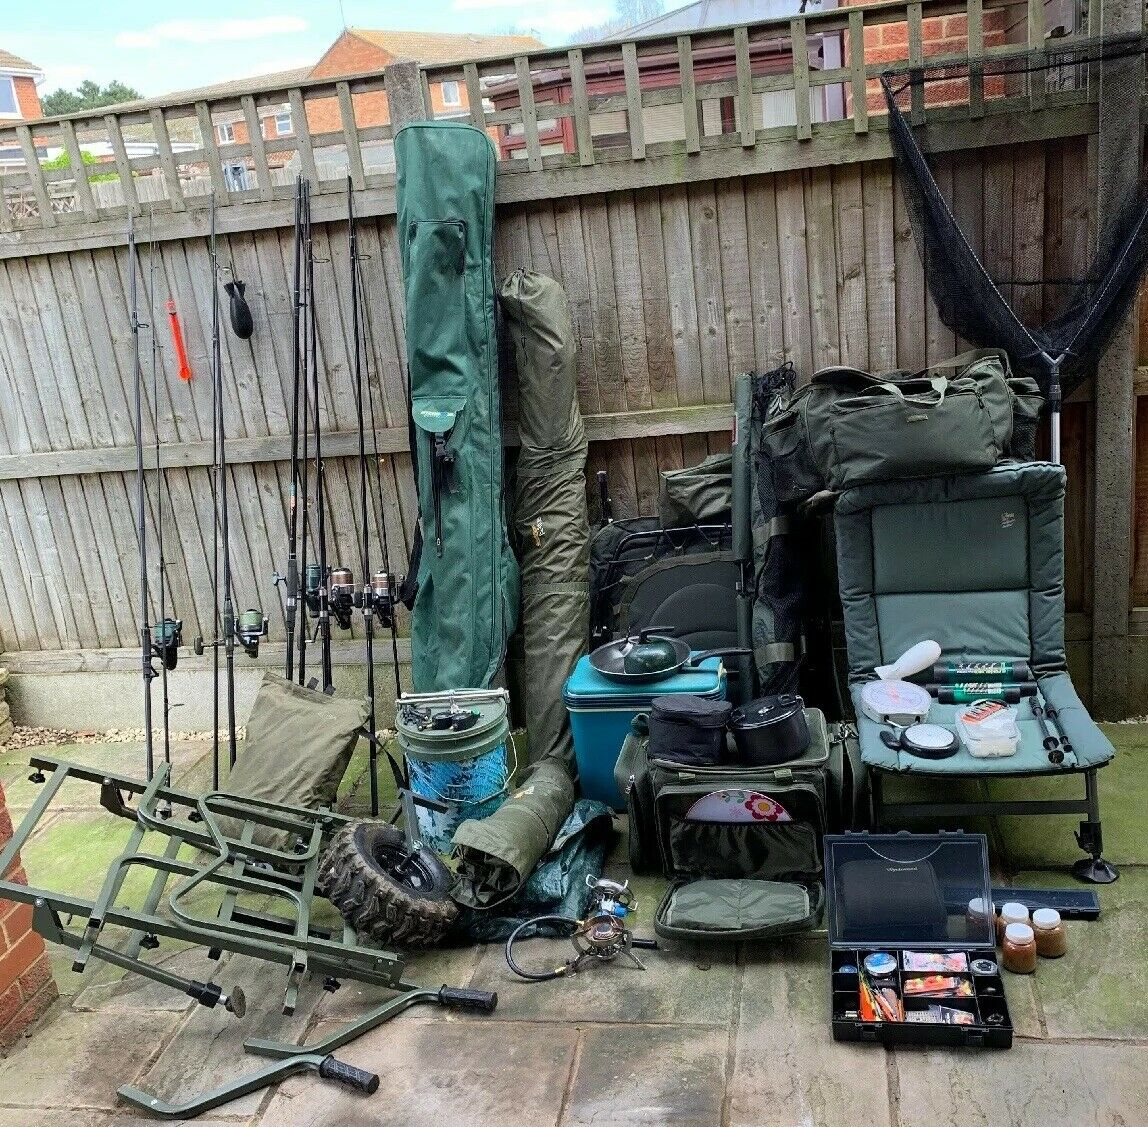 Ad - Complete 5 Rod Carp Fishing Set Up For Sale On eBay here --> https://t.co/FDhQAe2cOA  #carpf